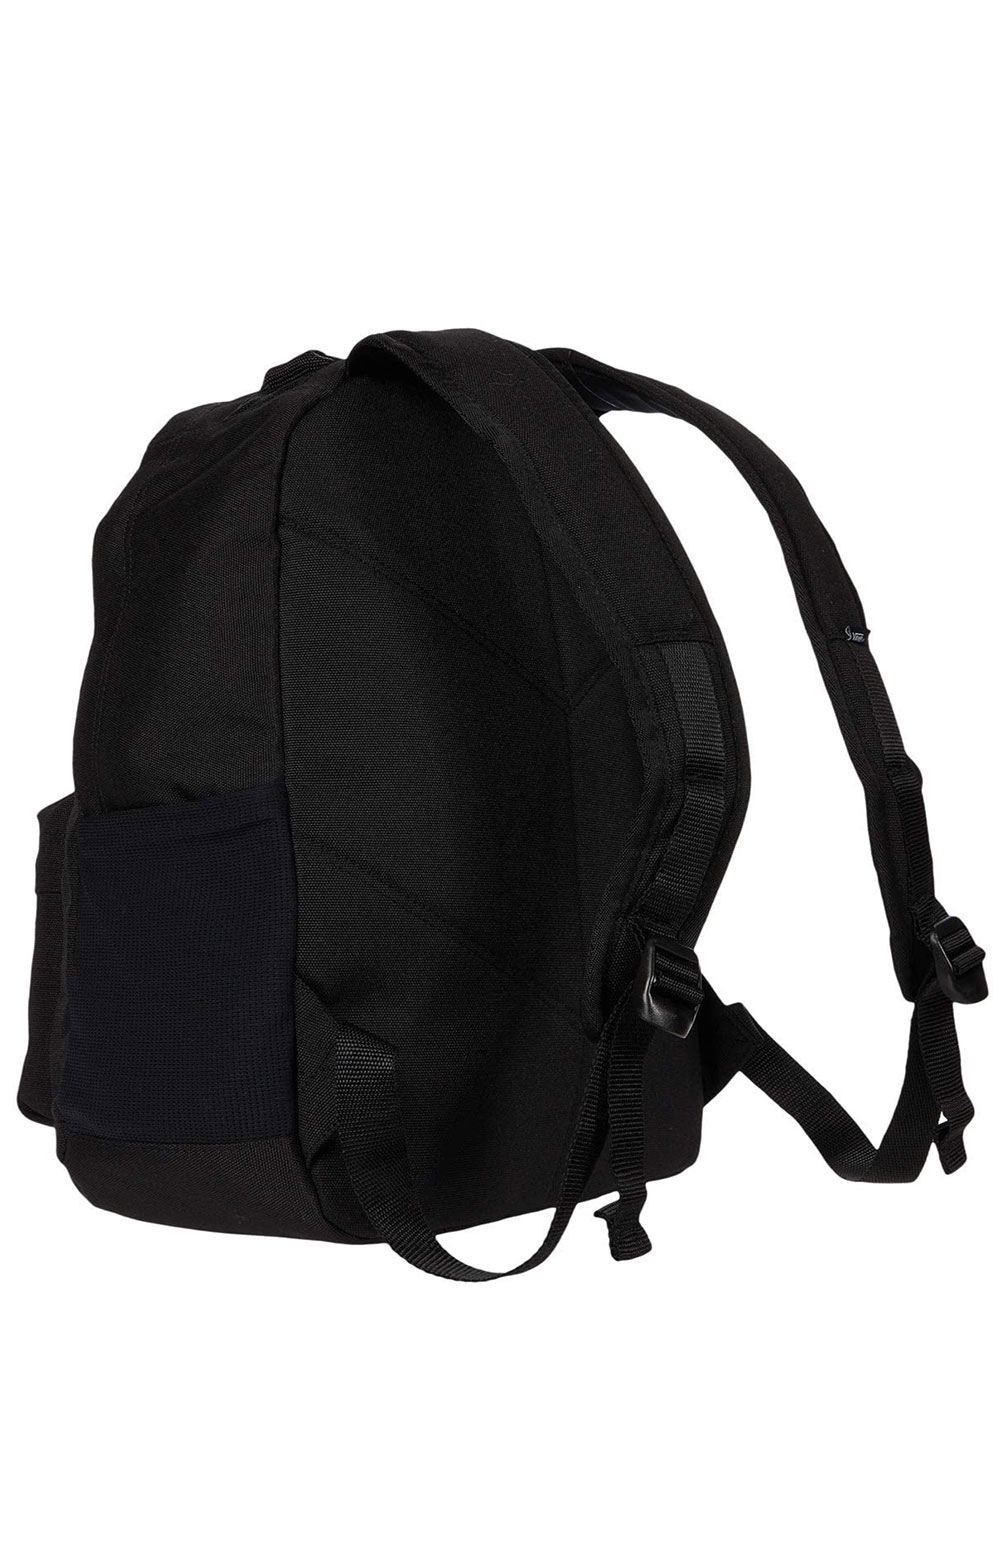 Startle Backpack - Black  2